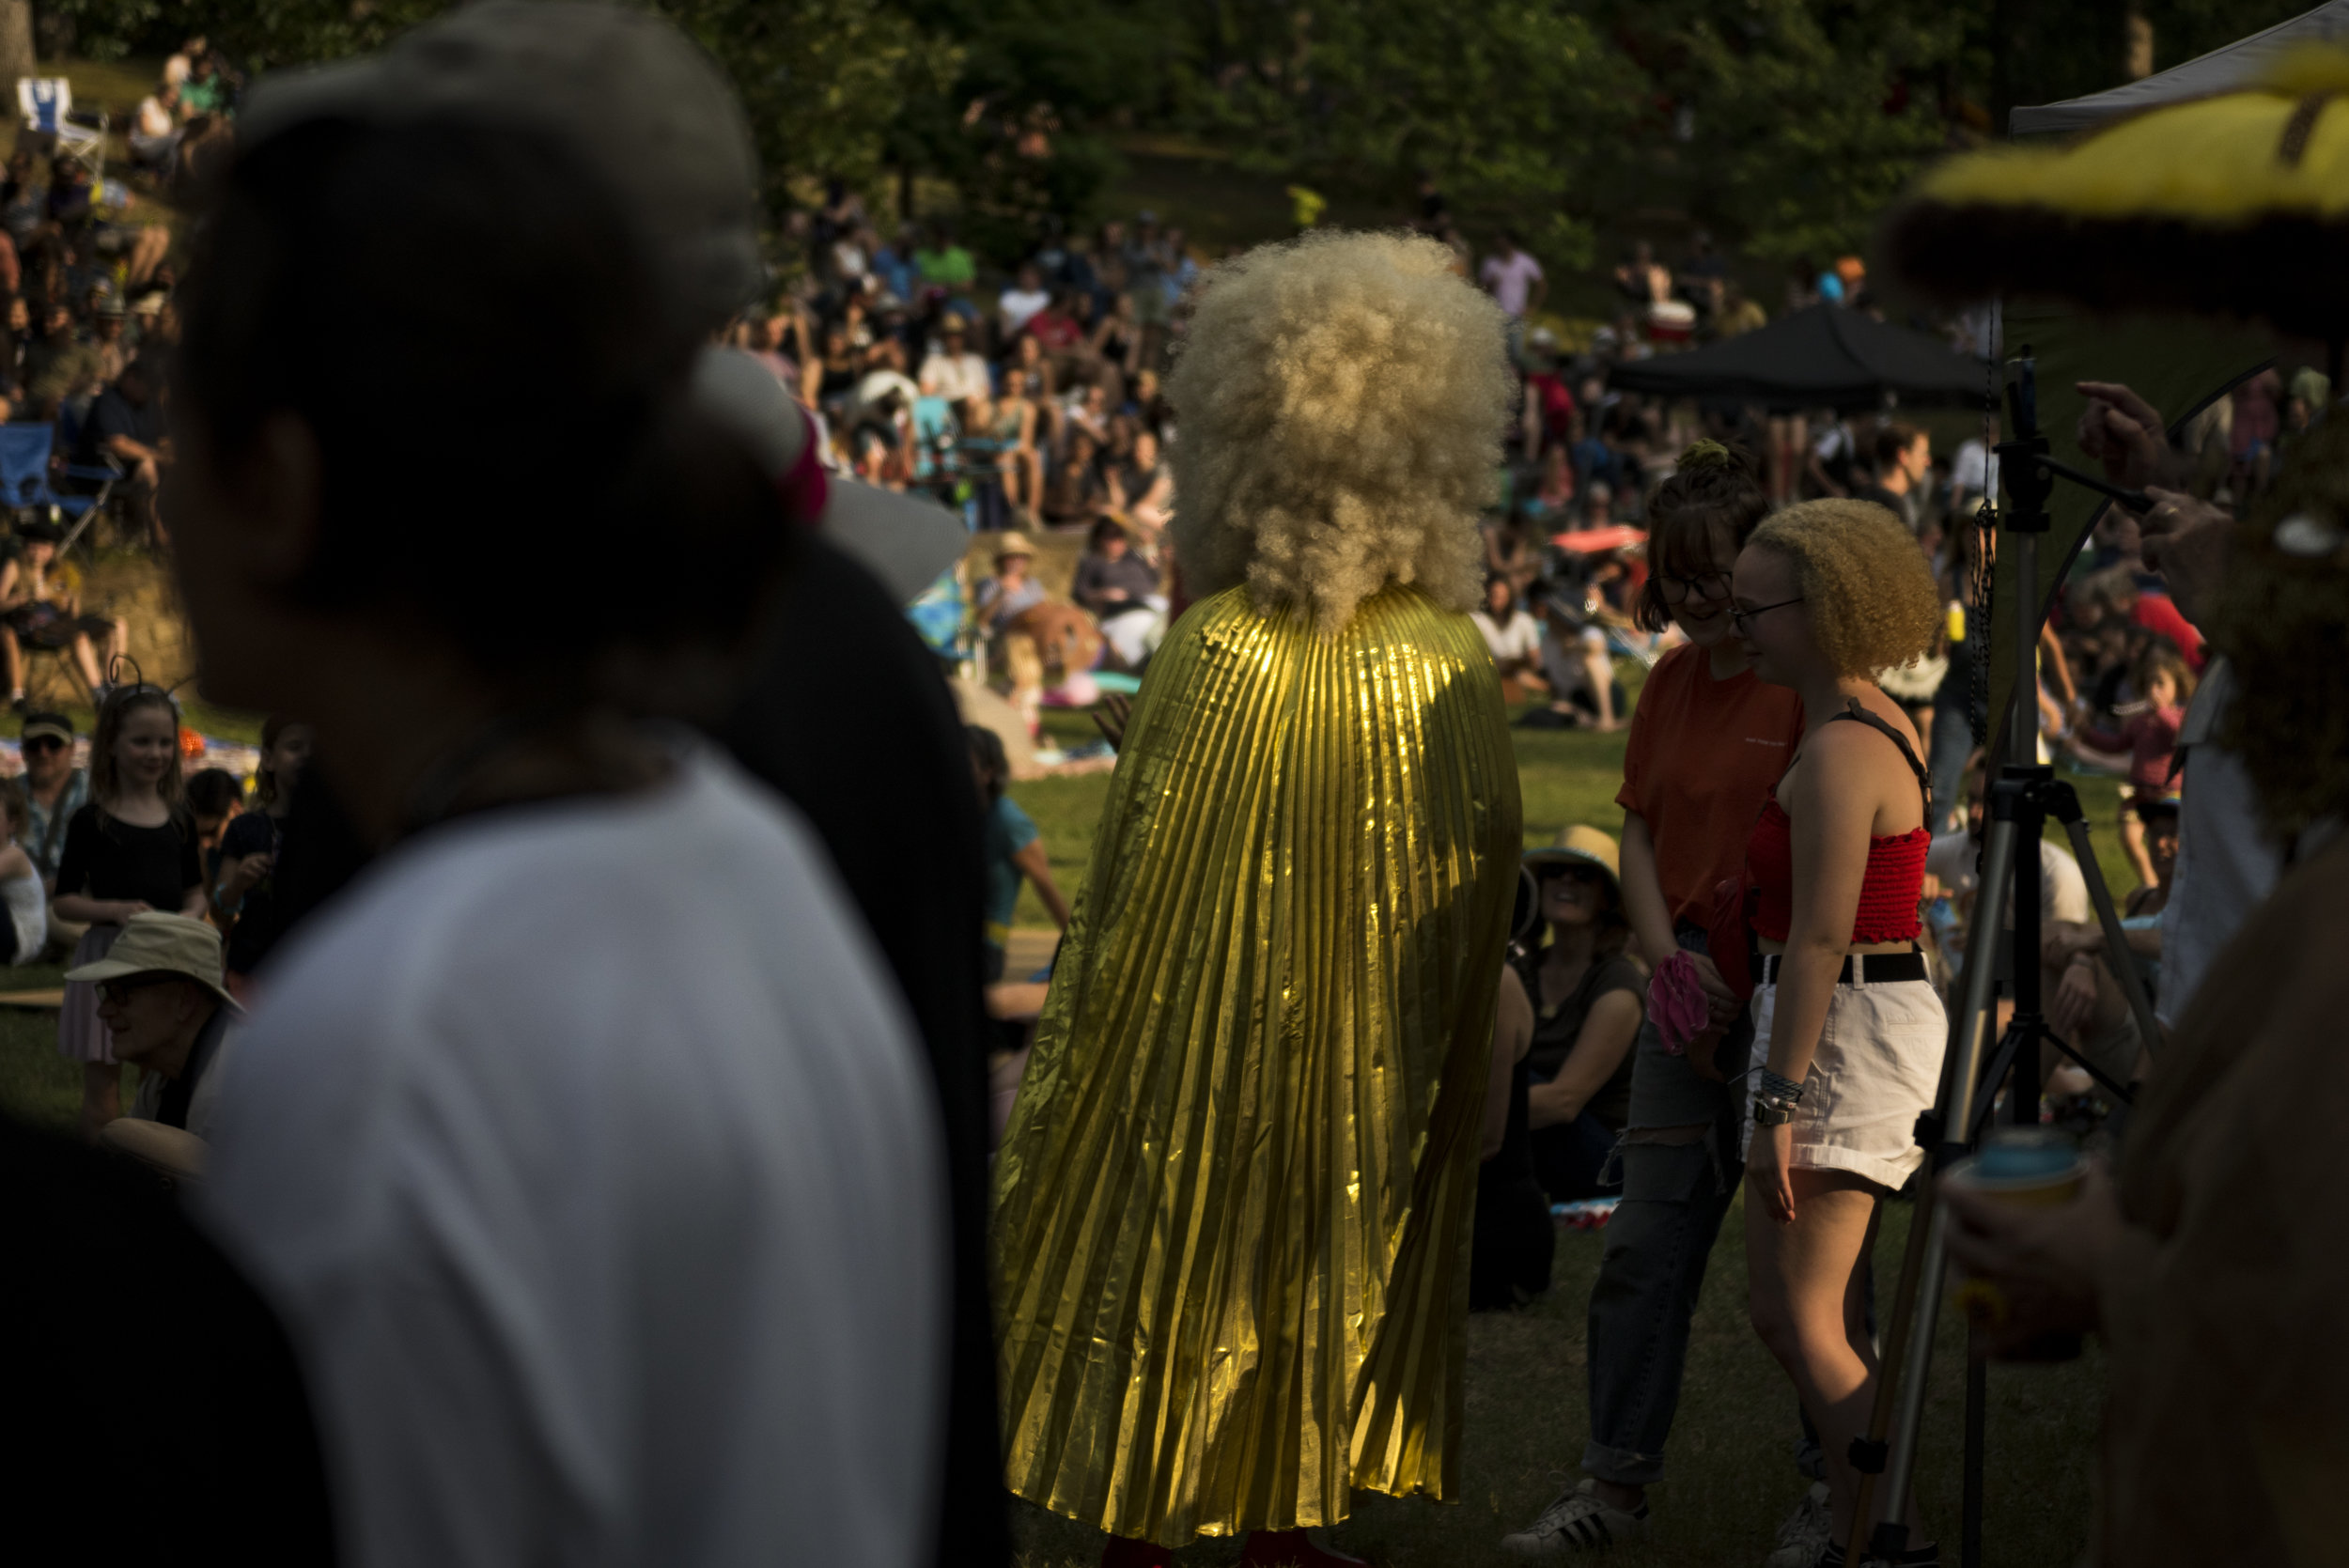 2018 Beaver Queen, Flat Tail Fanny, walks through the crowd on June 1, 2019 at the 2019 Beaver Queen Pageant in Durham Park.